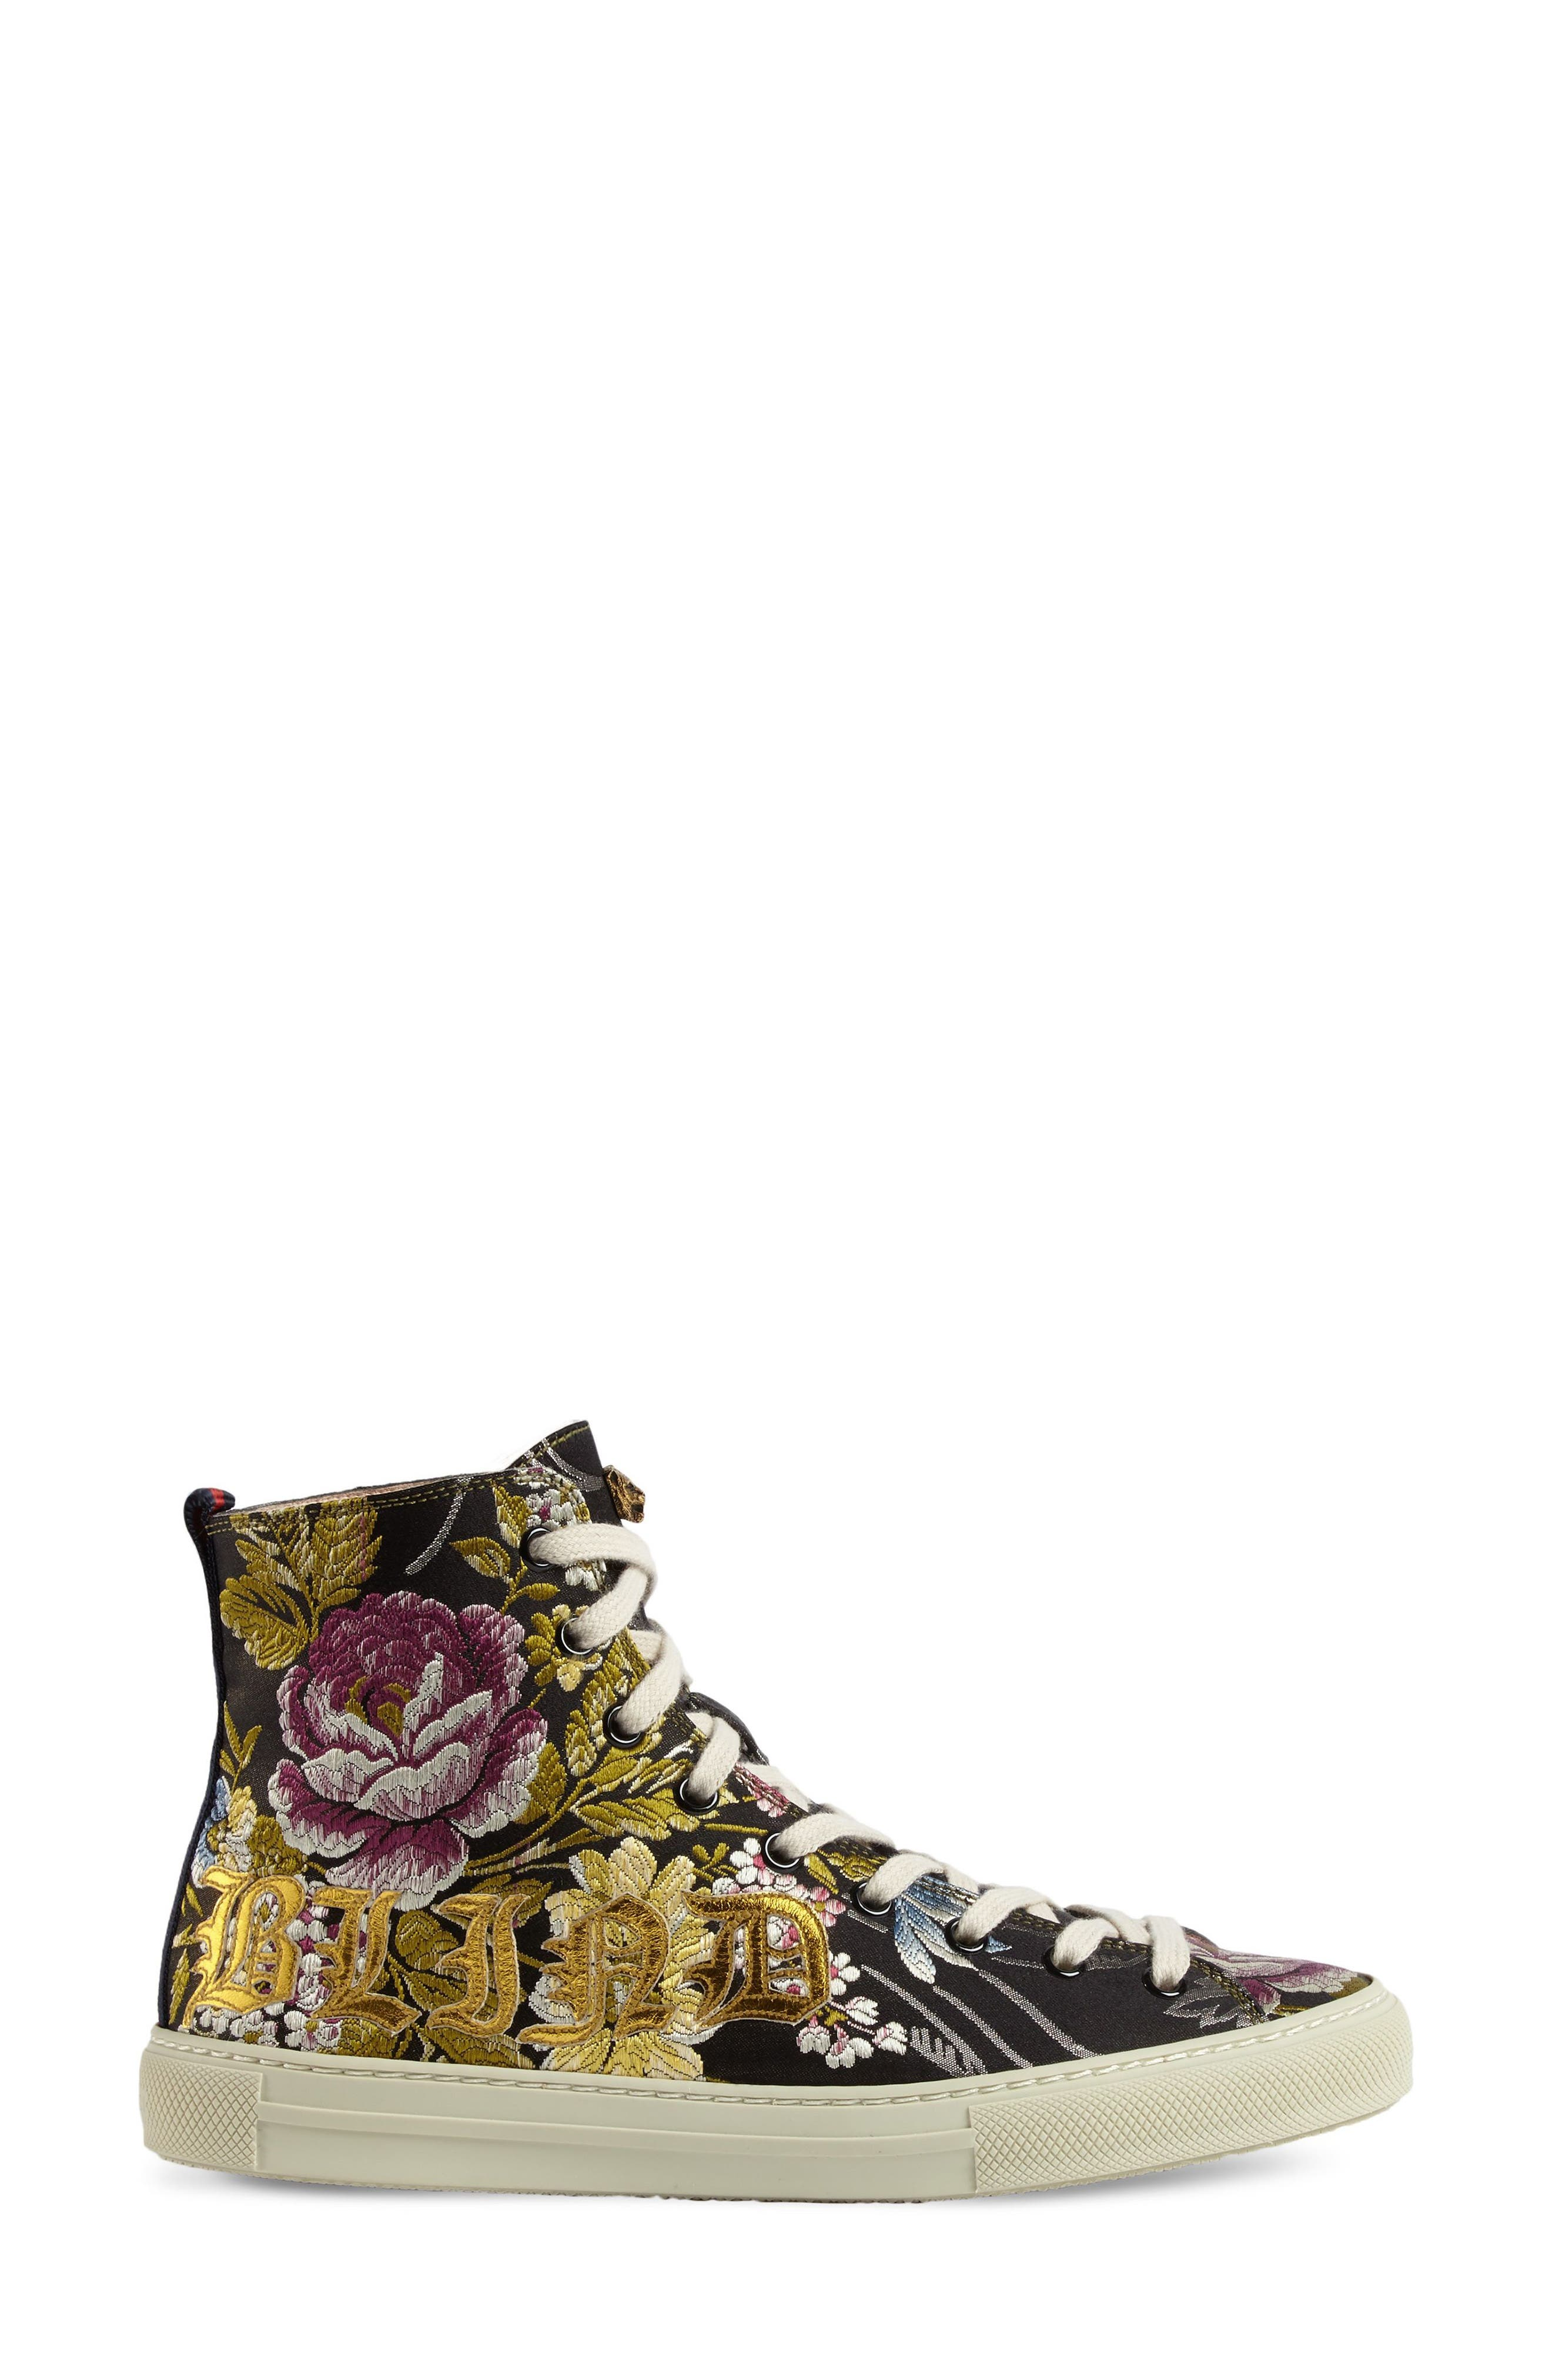 Main Image - Gucci Floral High Top Sneaker (Women)